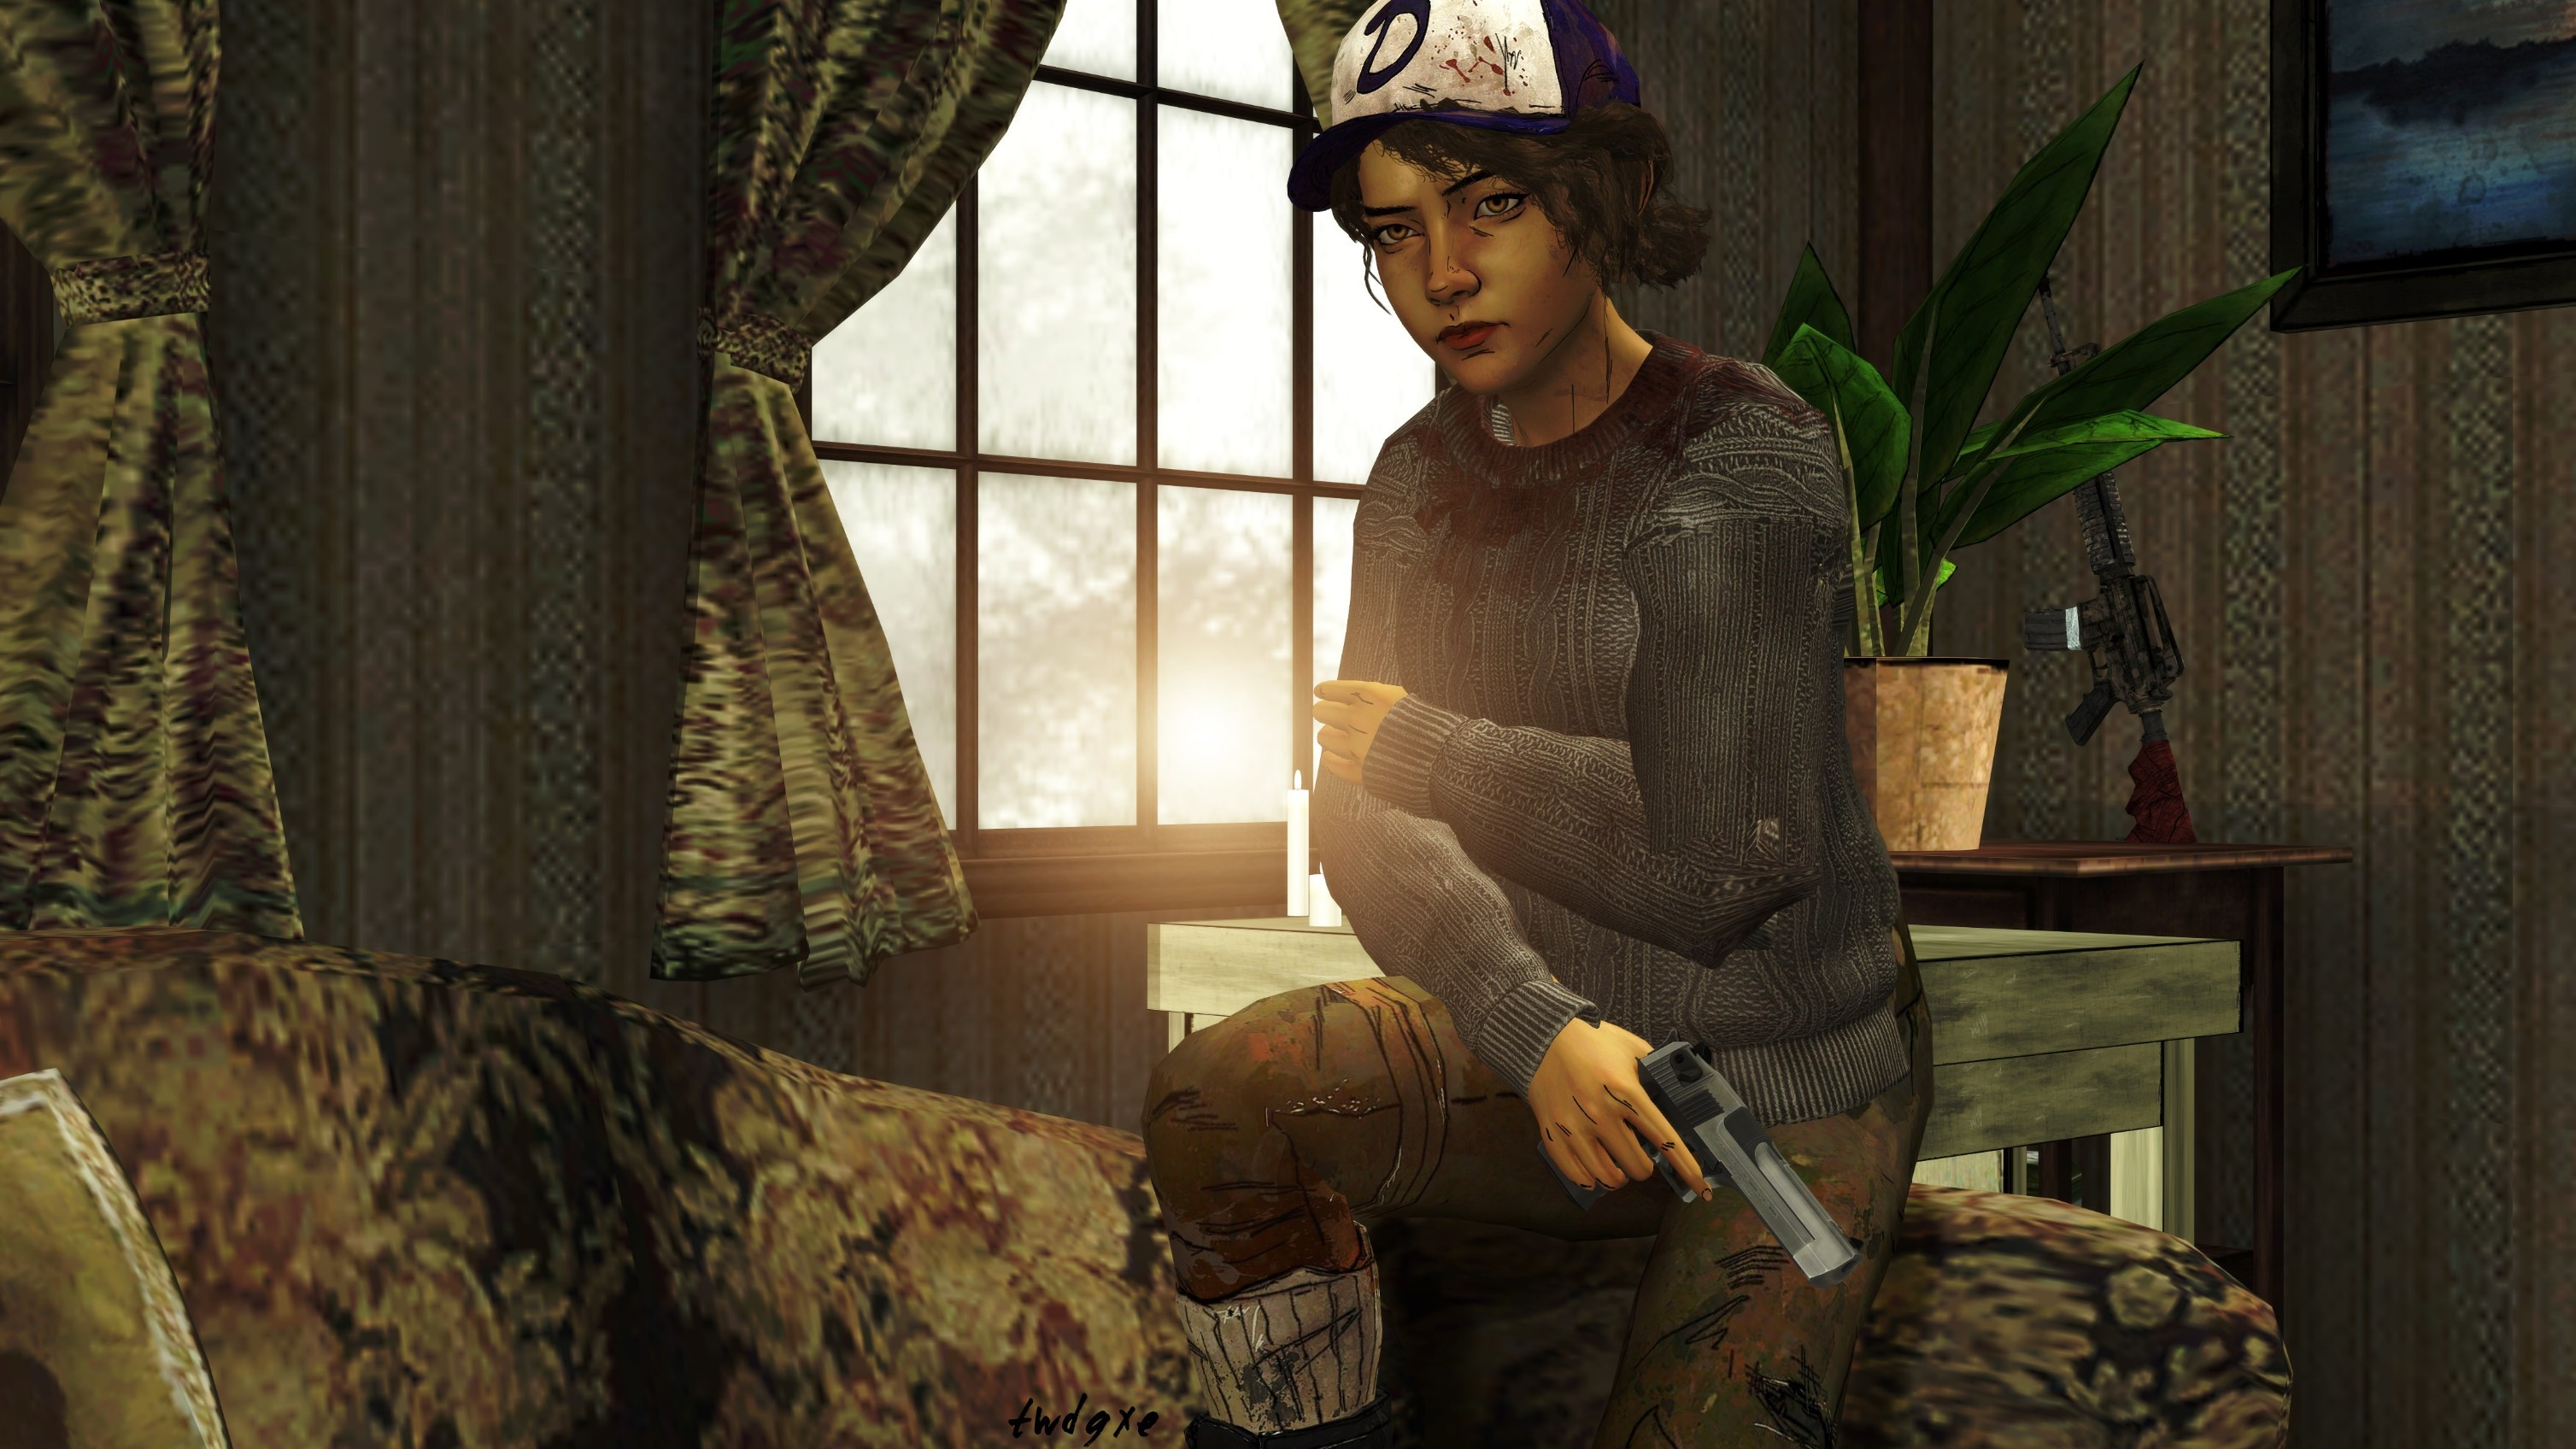 Clementine Sweater Hd Wallpaper Background Image